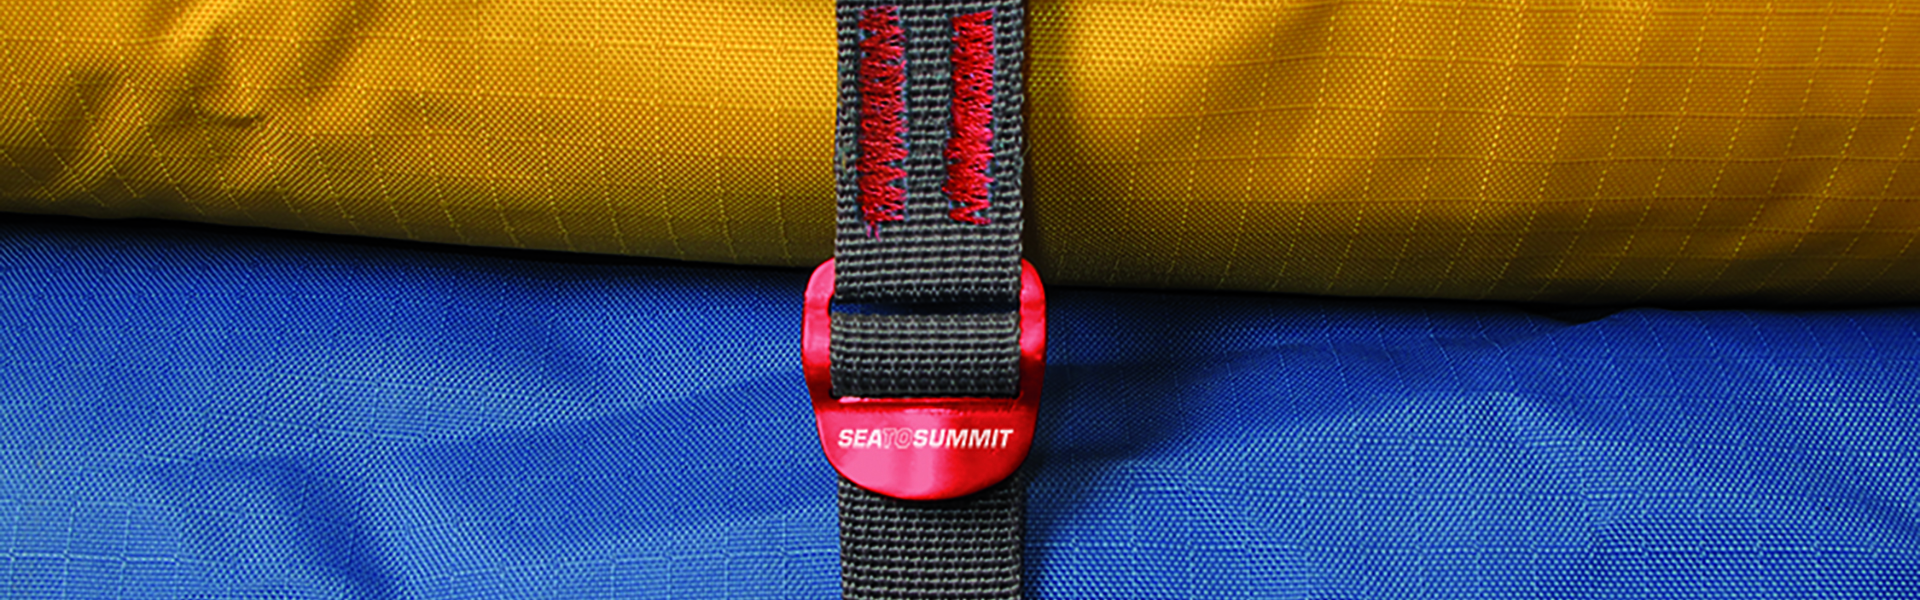 Rigging & Outfitting: Accessory Straps by Sea to Summit - Image 3335